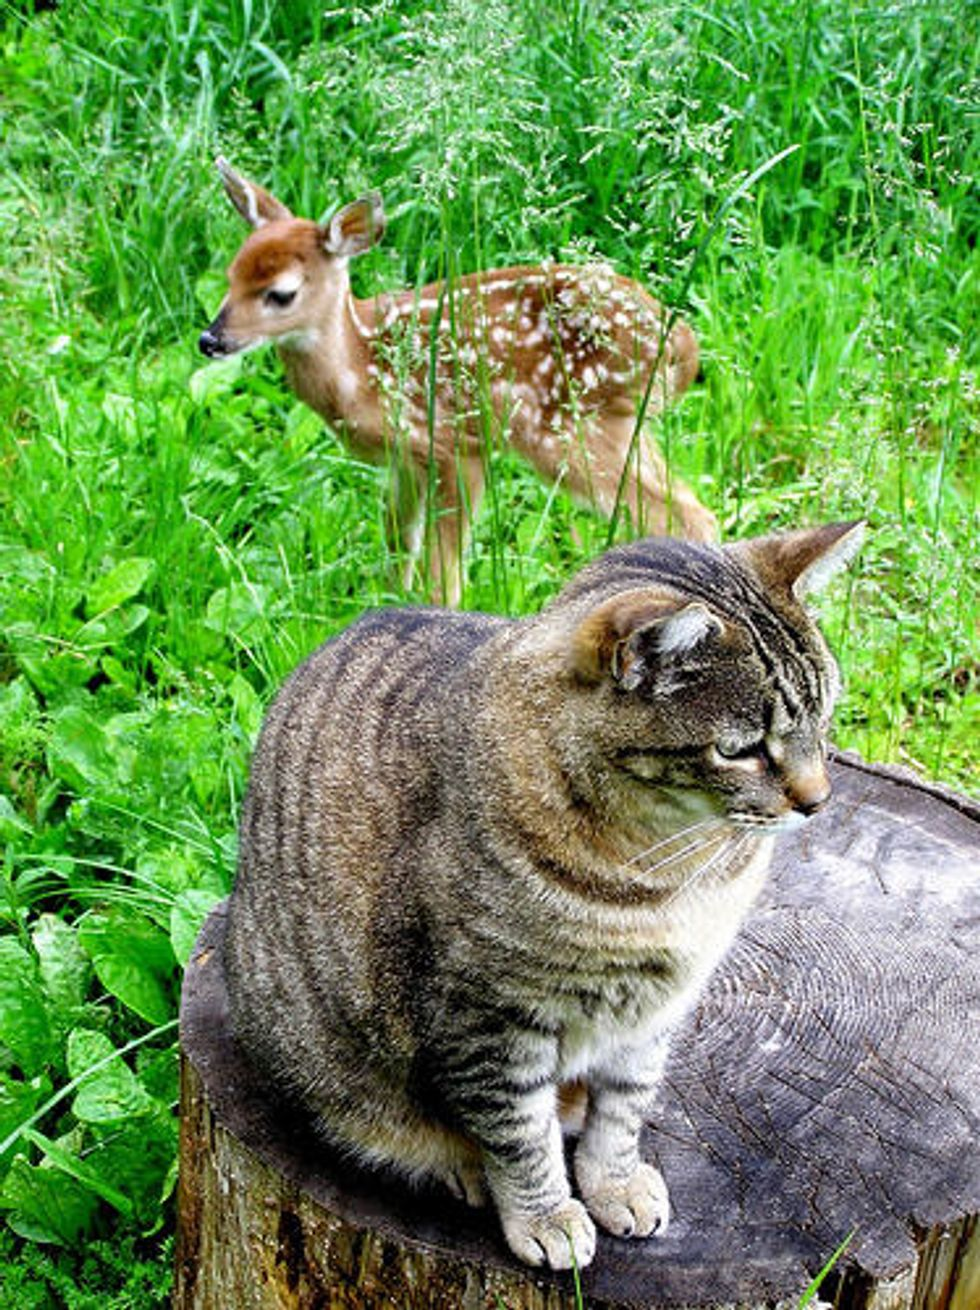 Cats and Their Horse and Deer Friends